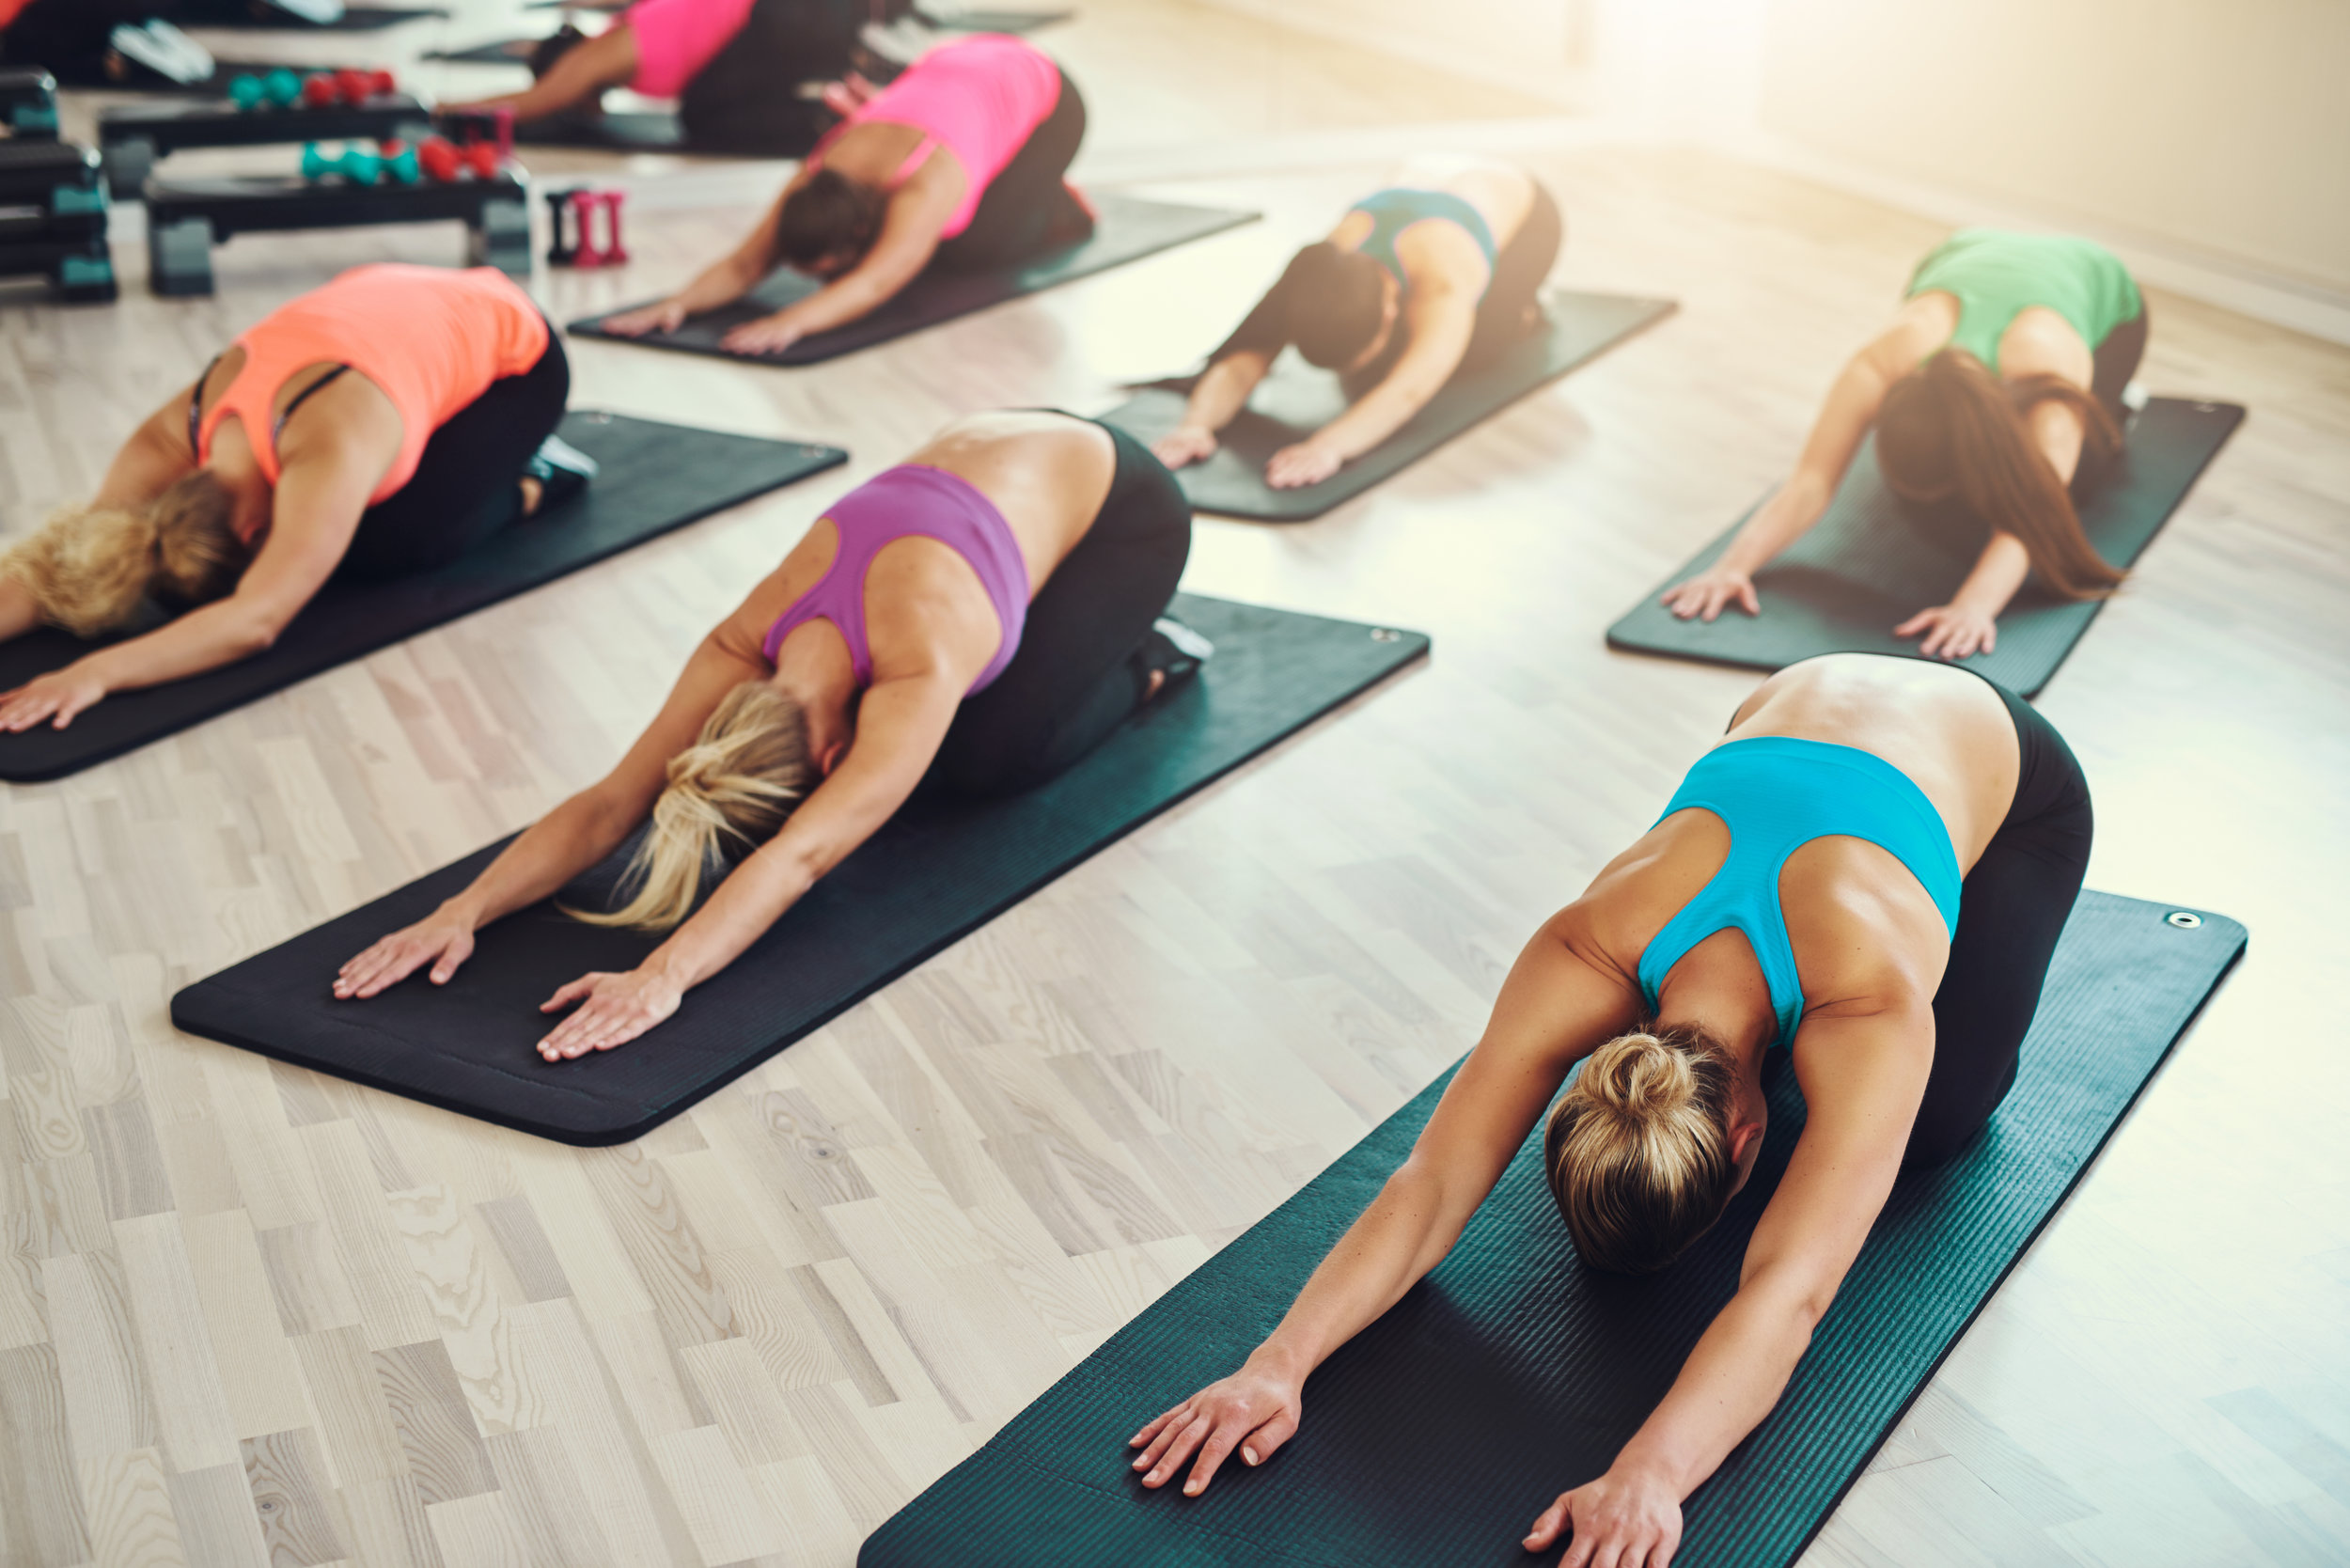 stock-photo-fitness-sport-training-yoga-and-people-concept-smiling-woman-doing-exercise-in-gym-334202042.jpg